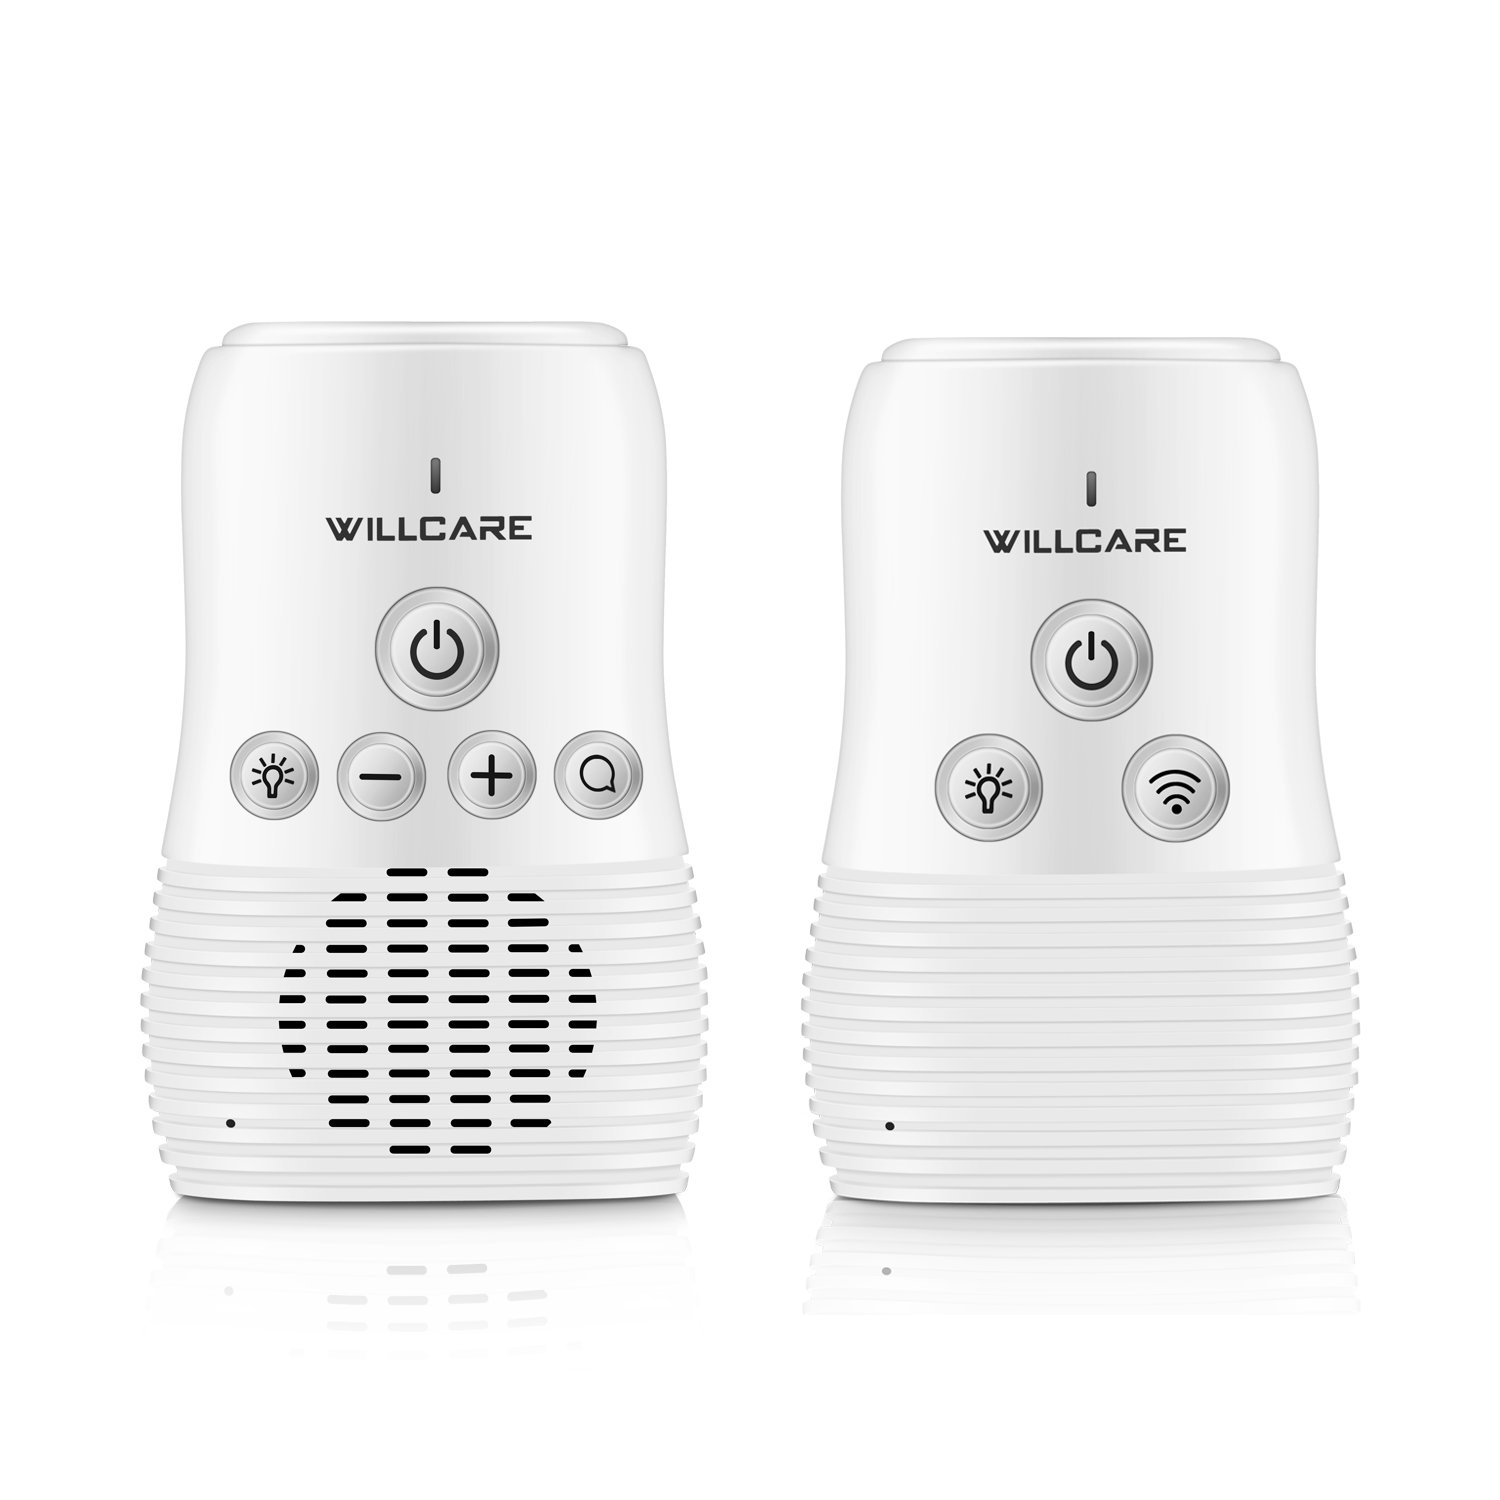 Willcare Upgraded Baby Monitor with Two-Way Audio, Smooth Night Light, Rechargeable Battery Operated Parent Unit & Long Range. (WHITE) DBM-8 2.0